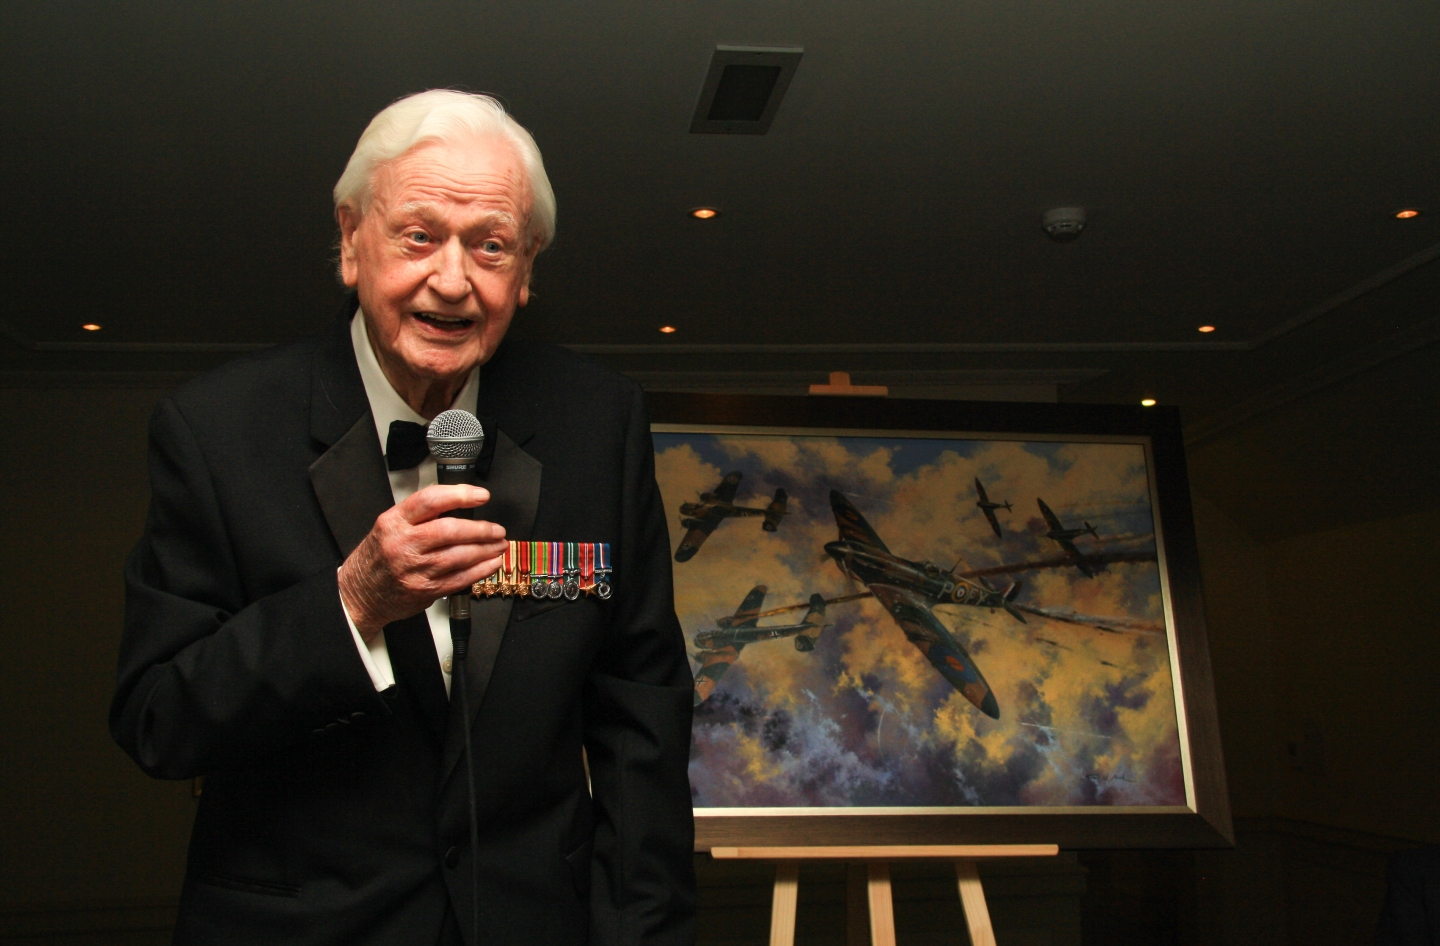 Tom Neil, Wing Commander in the Battle of Britain